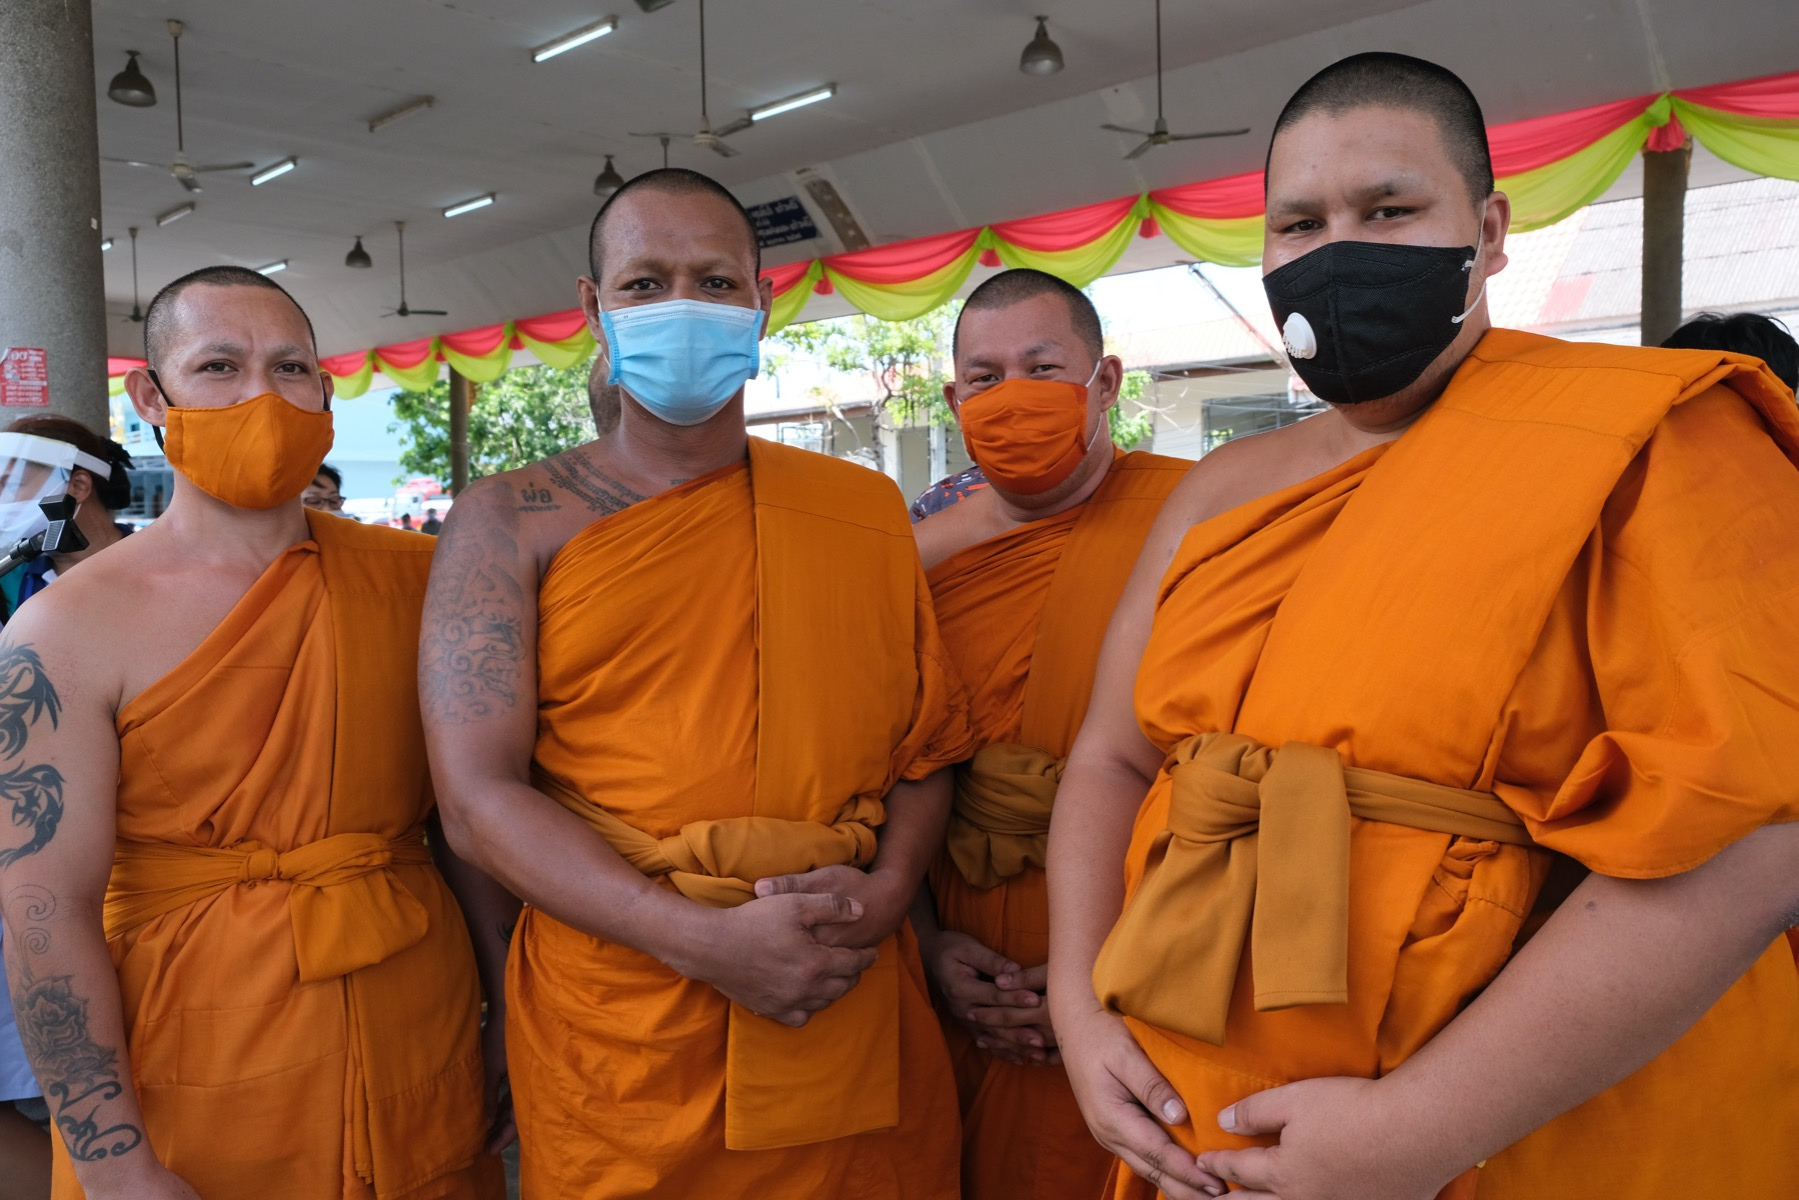 Monks are a part of Thai community